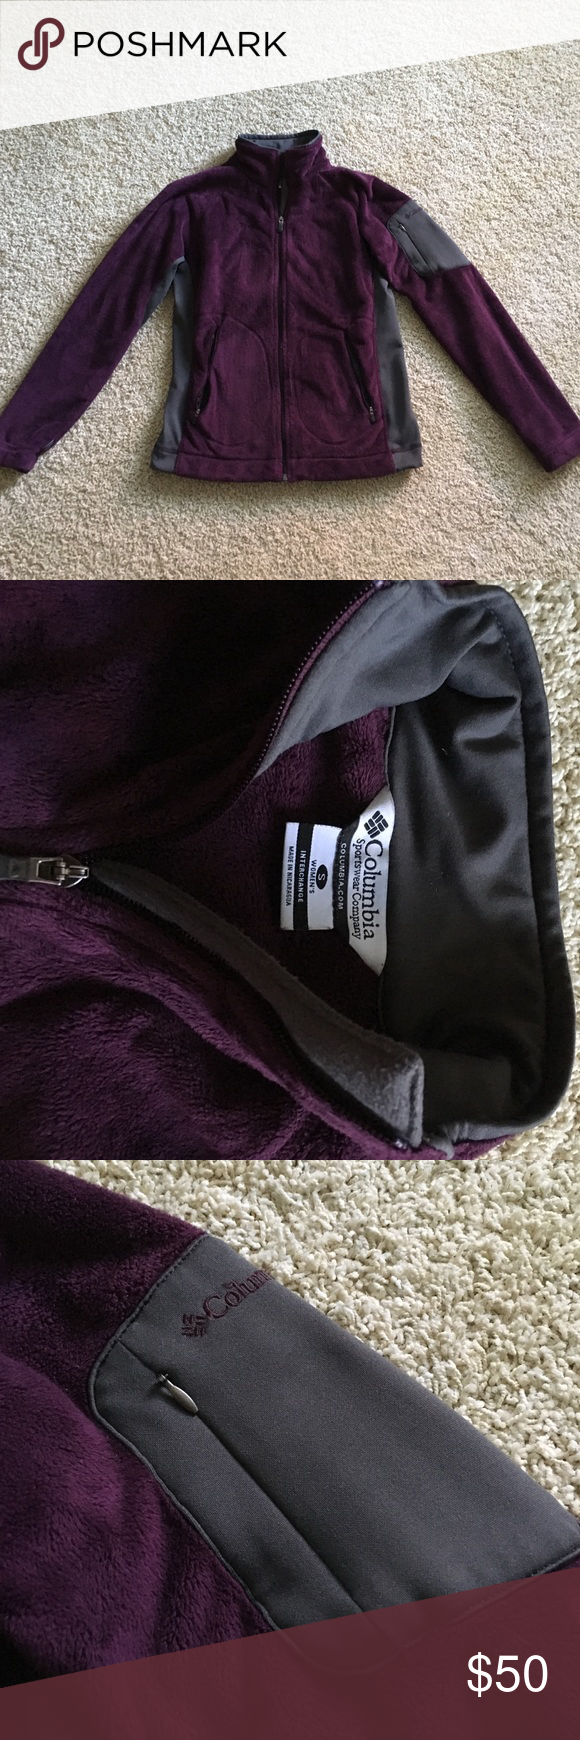 Columbia fleece in deep purple with grey details. Columbia plush fleece in deep purple with grey details.  This jacket is in fantastic condition, only worn a few times.  It's cozy & perfect for Fall.  There are 2 side zip pockets deep enough for keys & a phone & a pocket on the left arm.  There are little toggles inside to cinch up the waist. Columbia Jackets & Coats